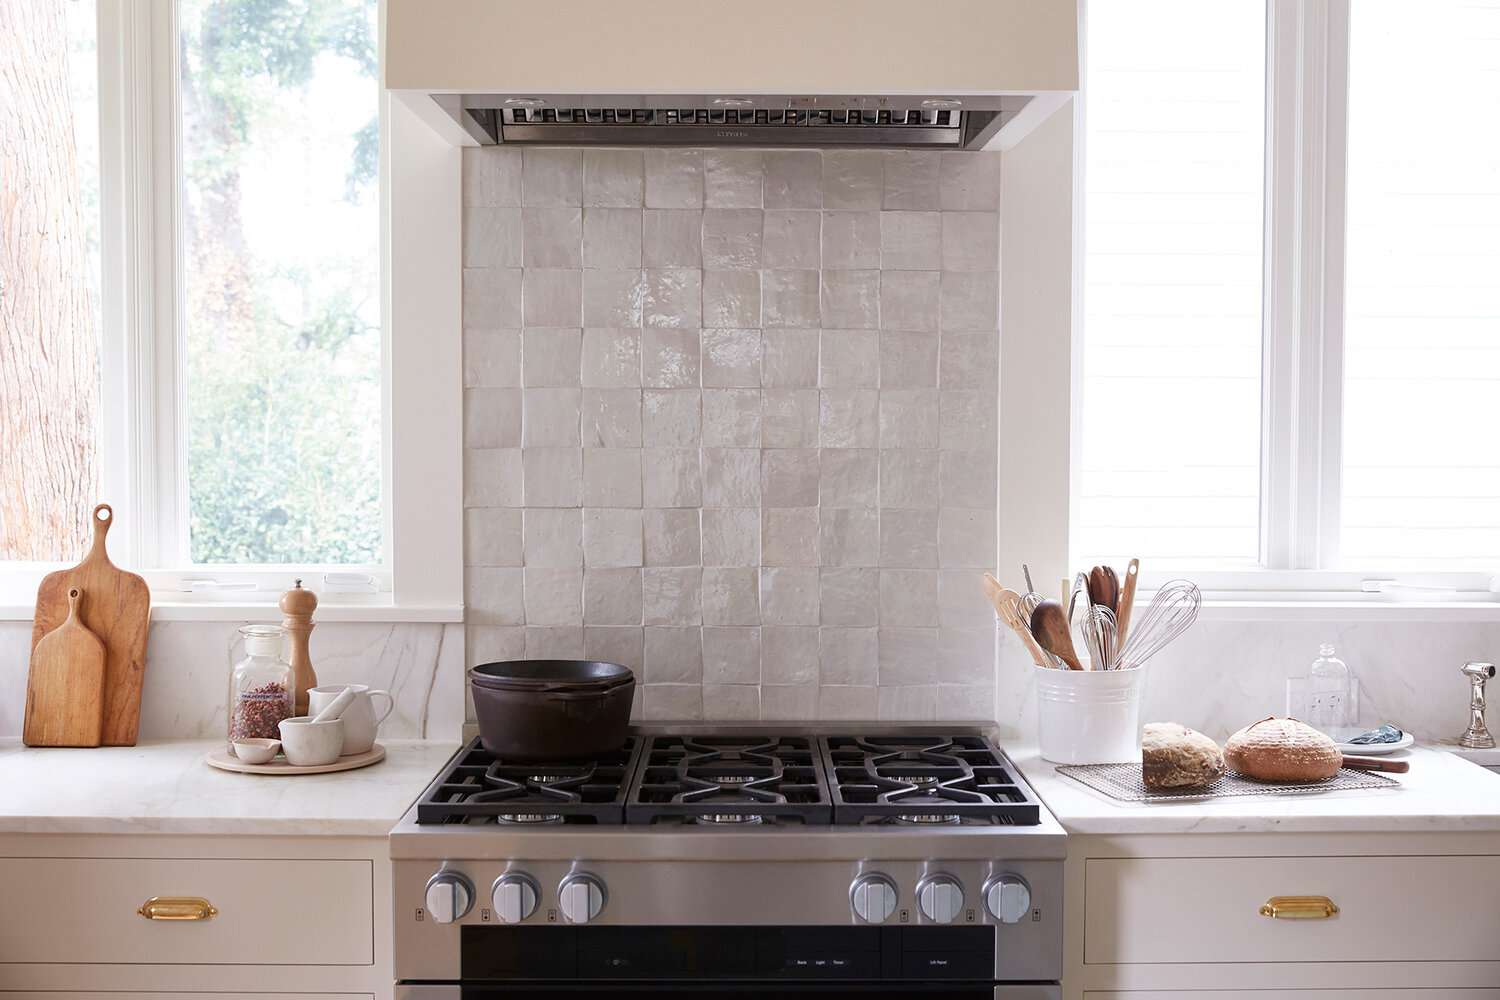 A kitchen backsplash lined with textured white square tiles